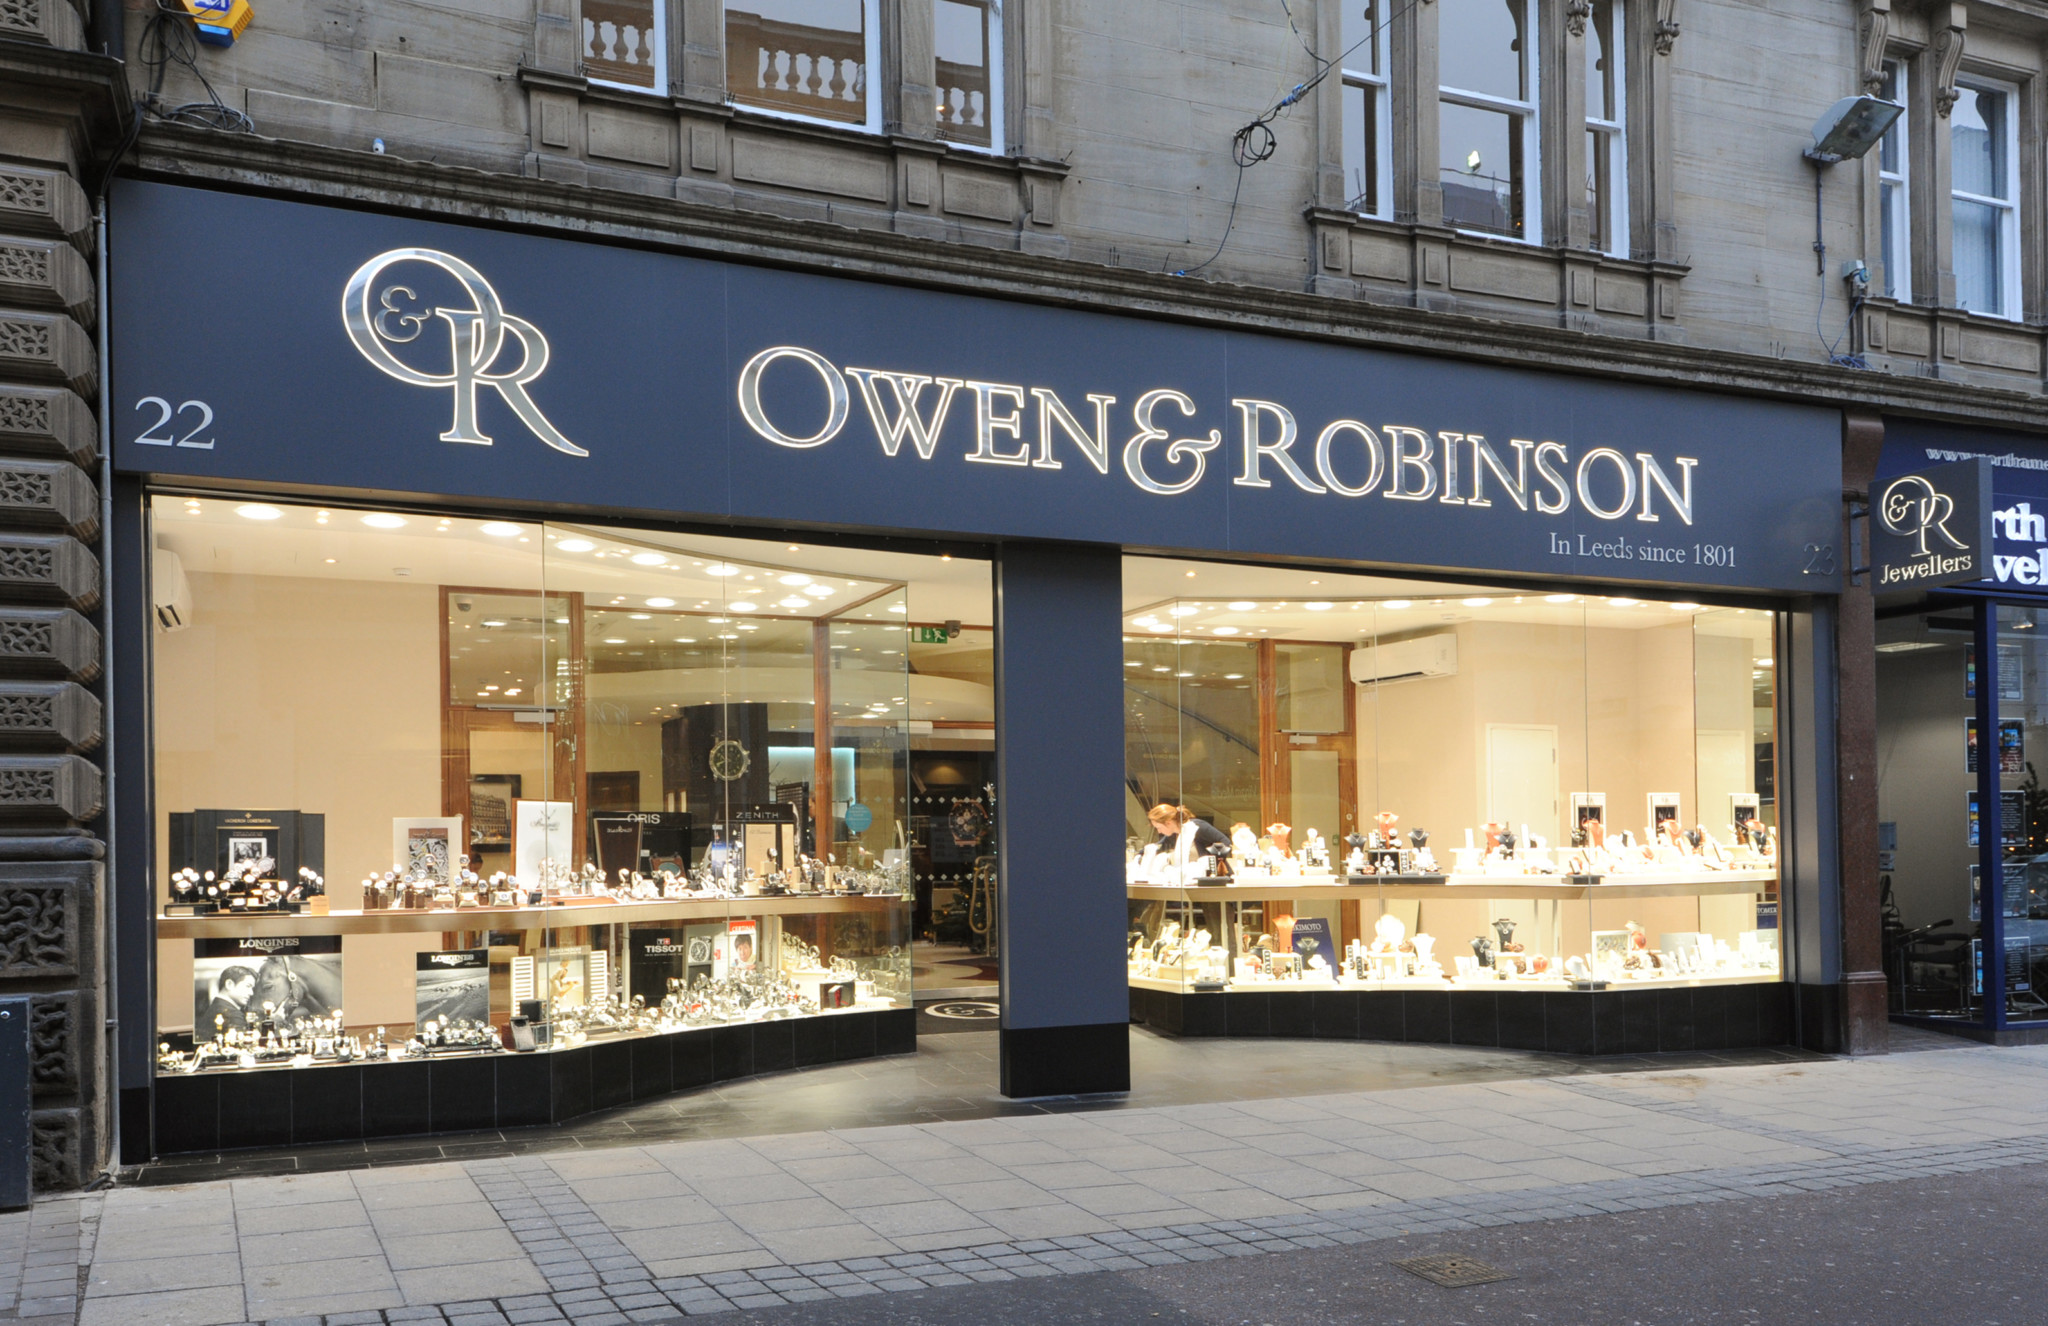 Owen & Robinson, owned by Berry's parent company, is one of the only stockists outside London for A. Lange & Sohne, Richard Mille and Vacheron Constantin.